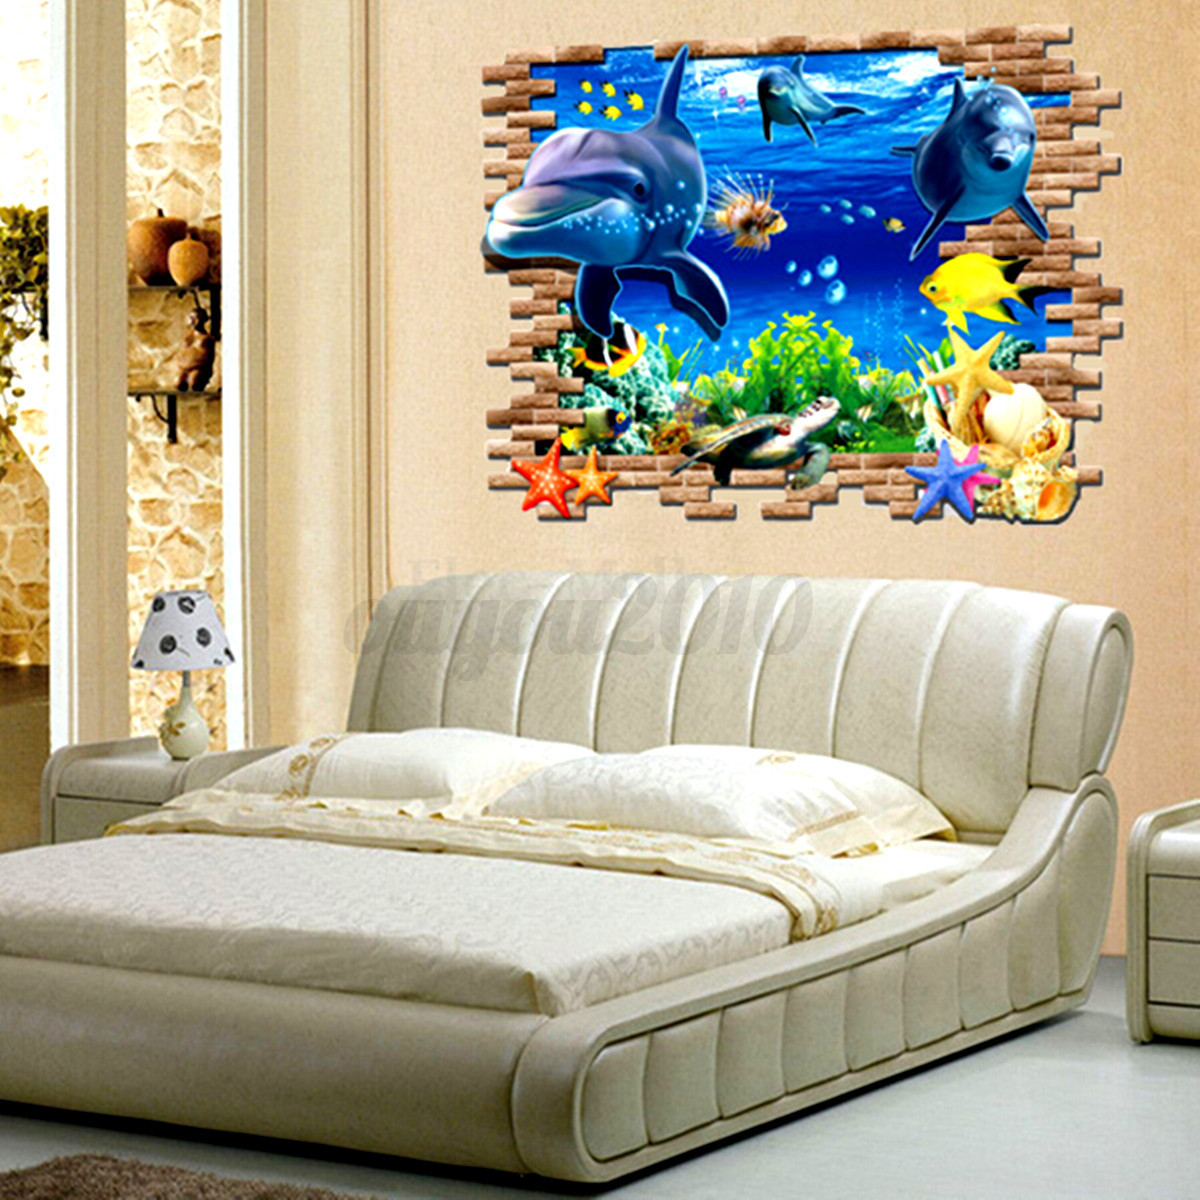 3d fenster wandtattoo sticker aufkleber stern spiegel meer decke wohnzimmer deko eur 2 99. Black Bedroom Furniture Sets. Home Design Ideas